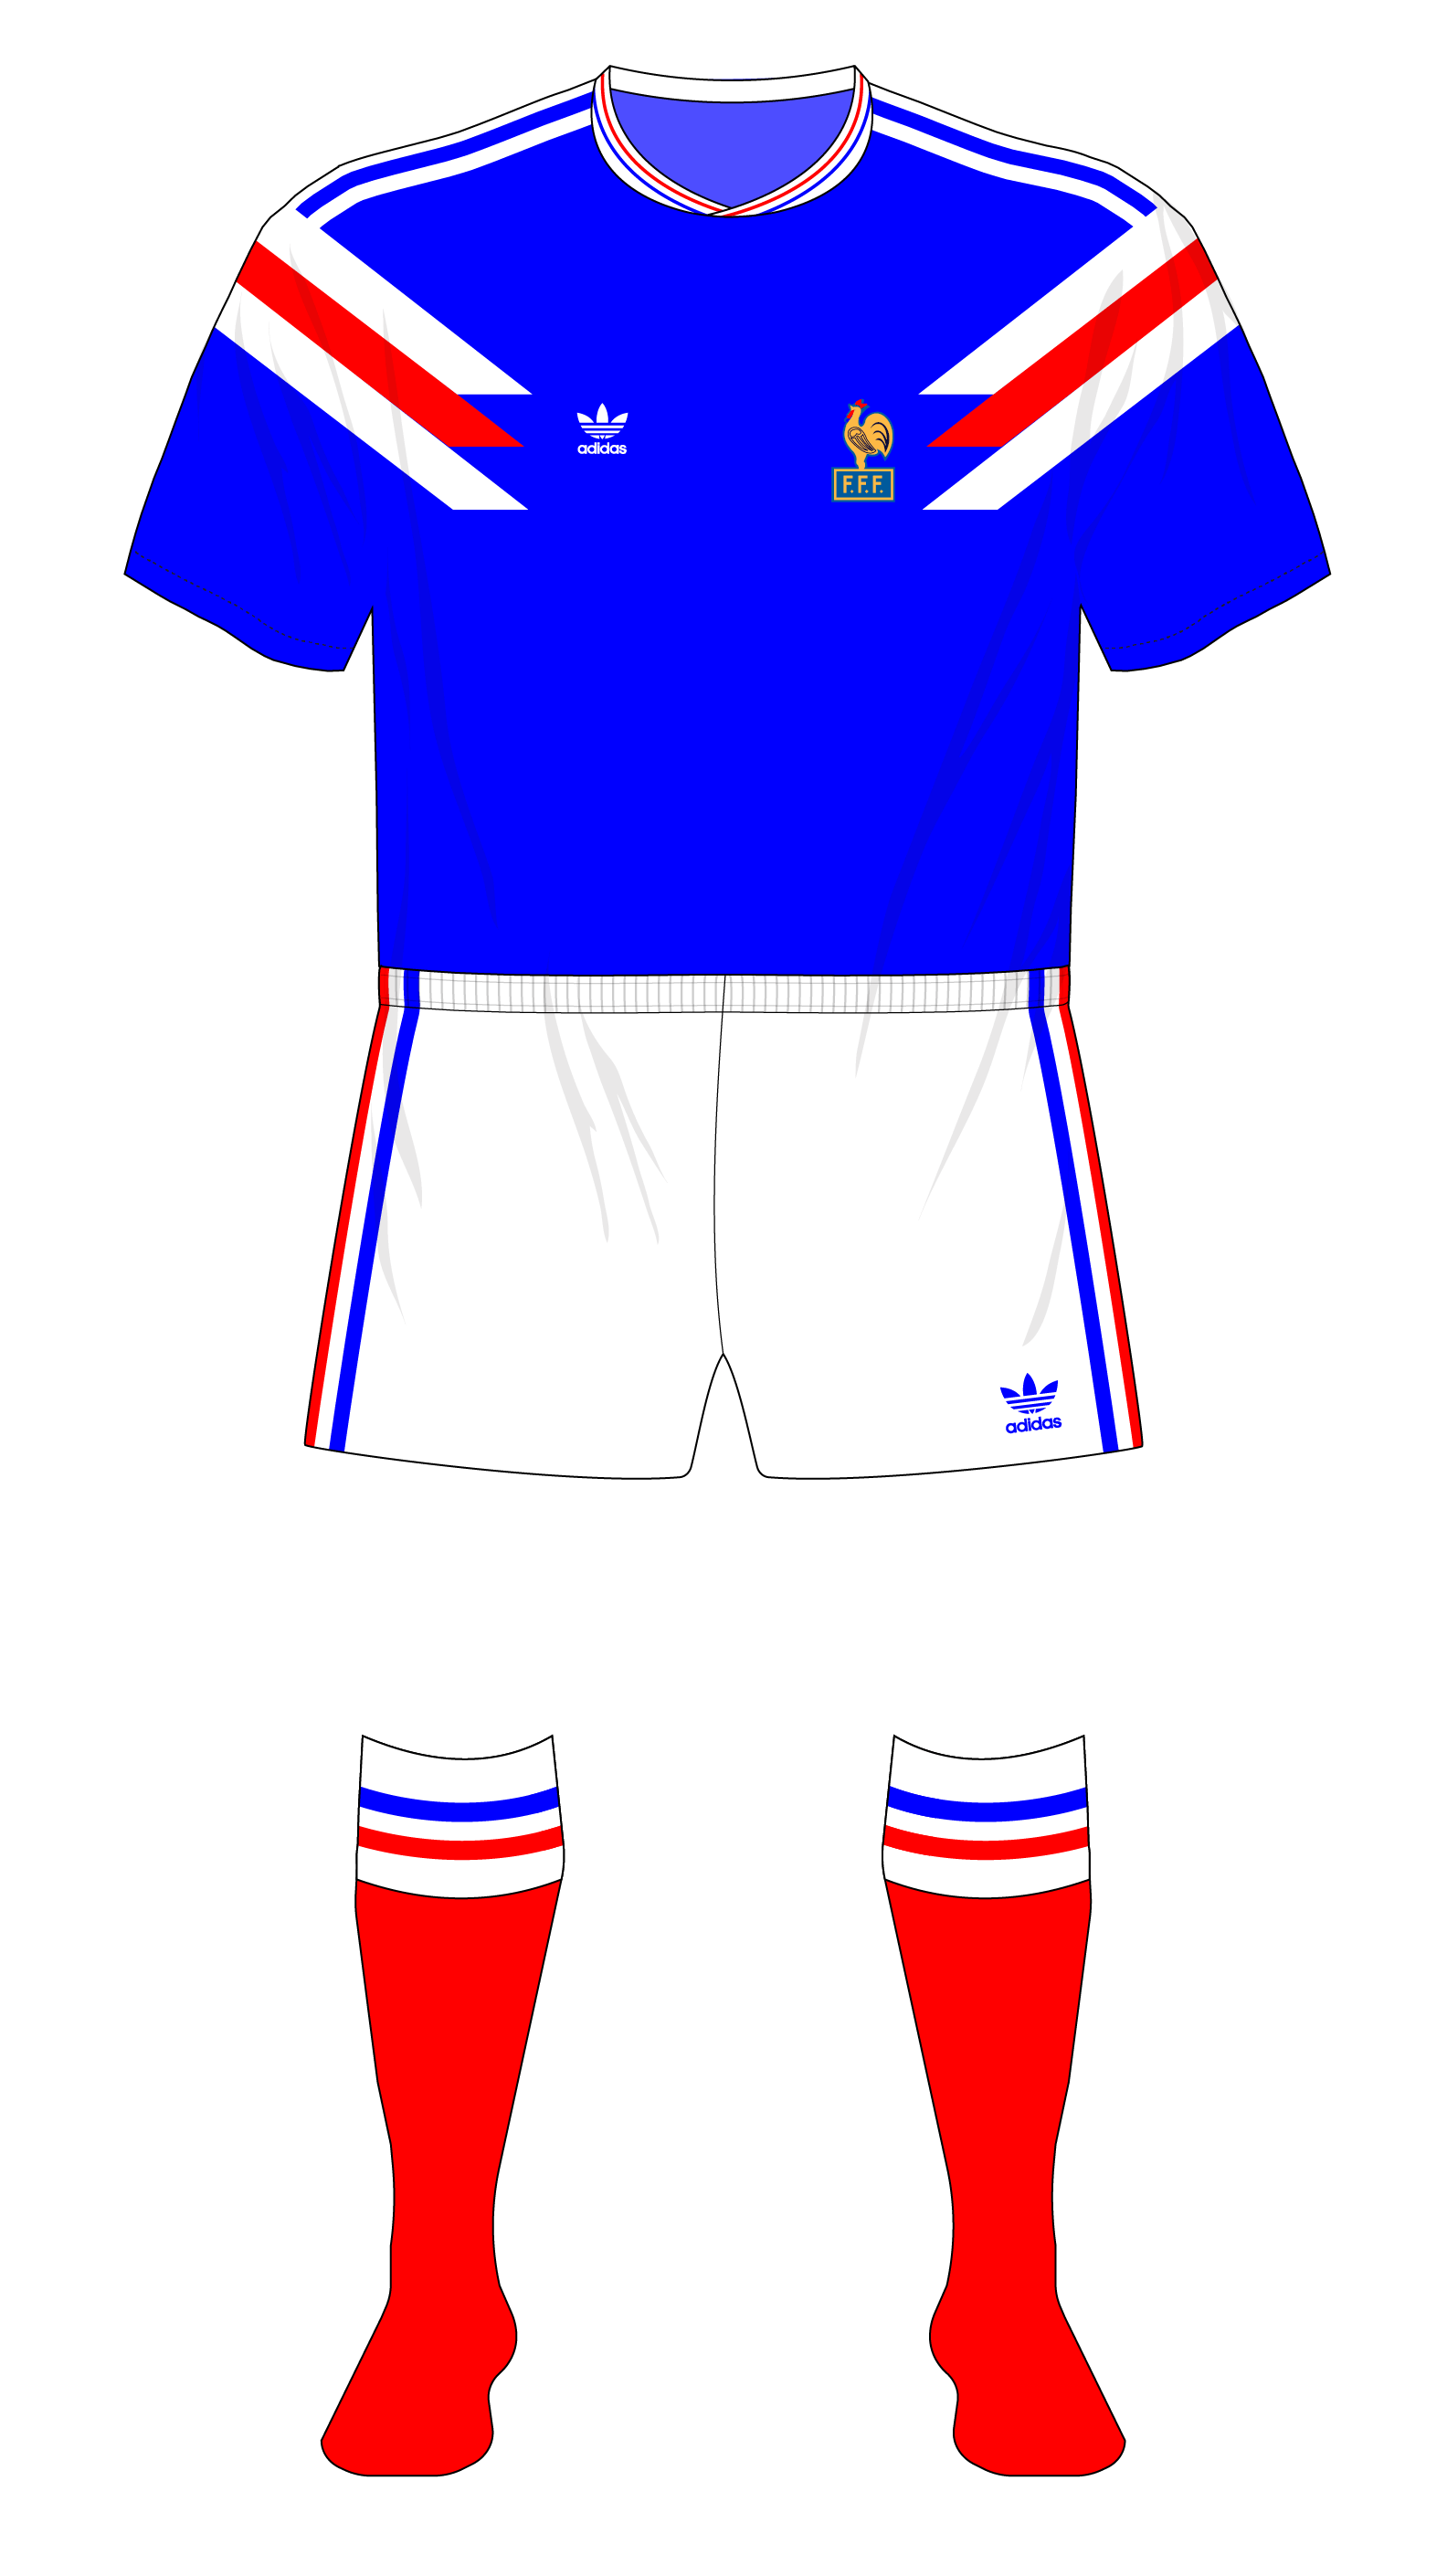 France s 1980s and 1990s adidas underage team kits – Museum of Jerseys 191a50e73